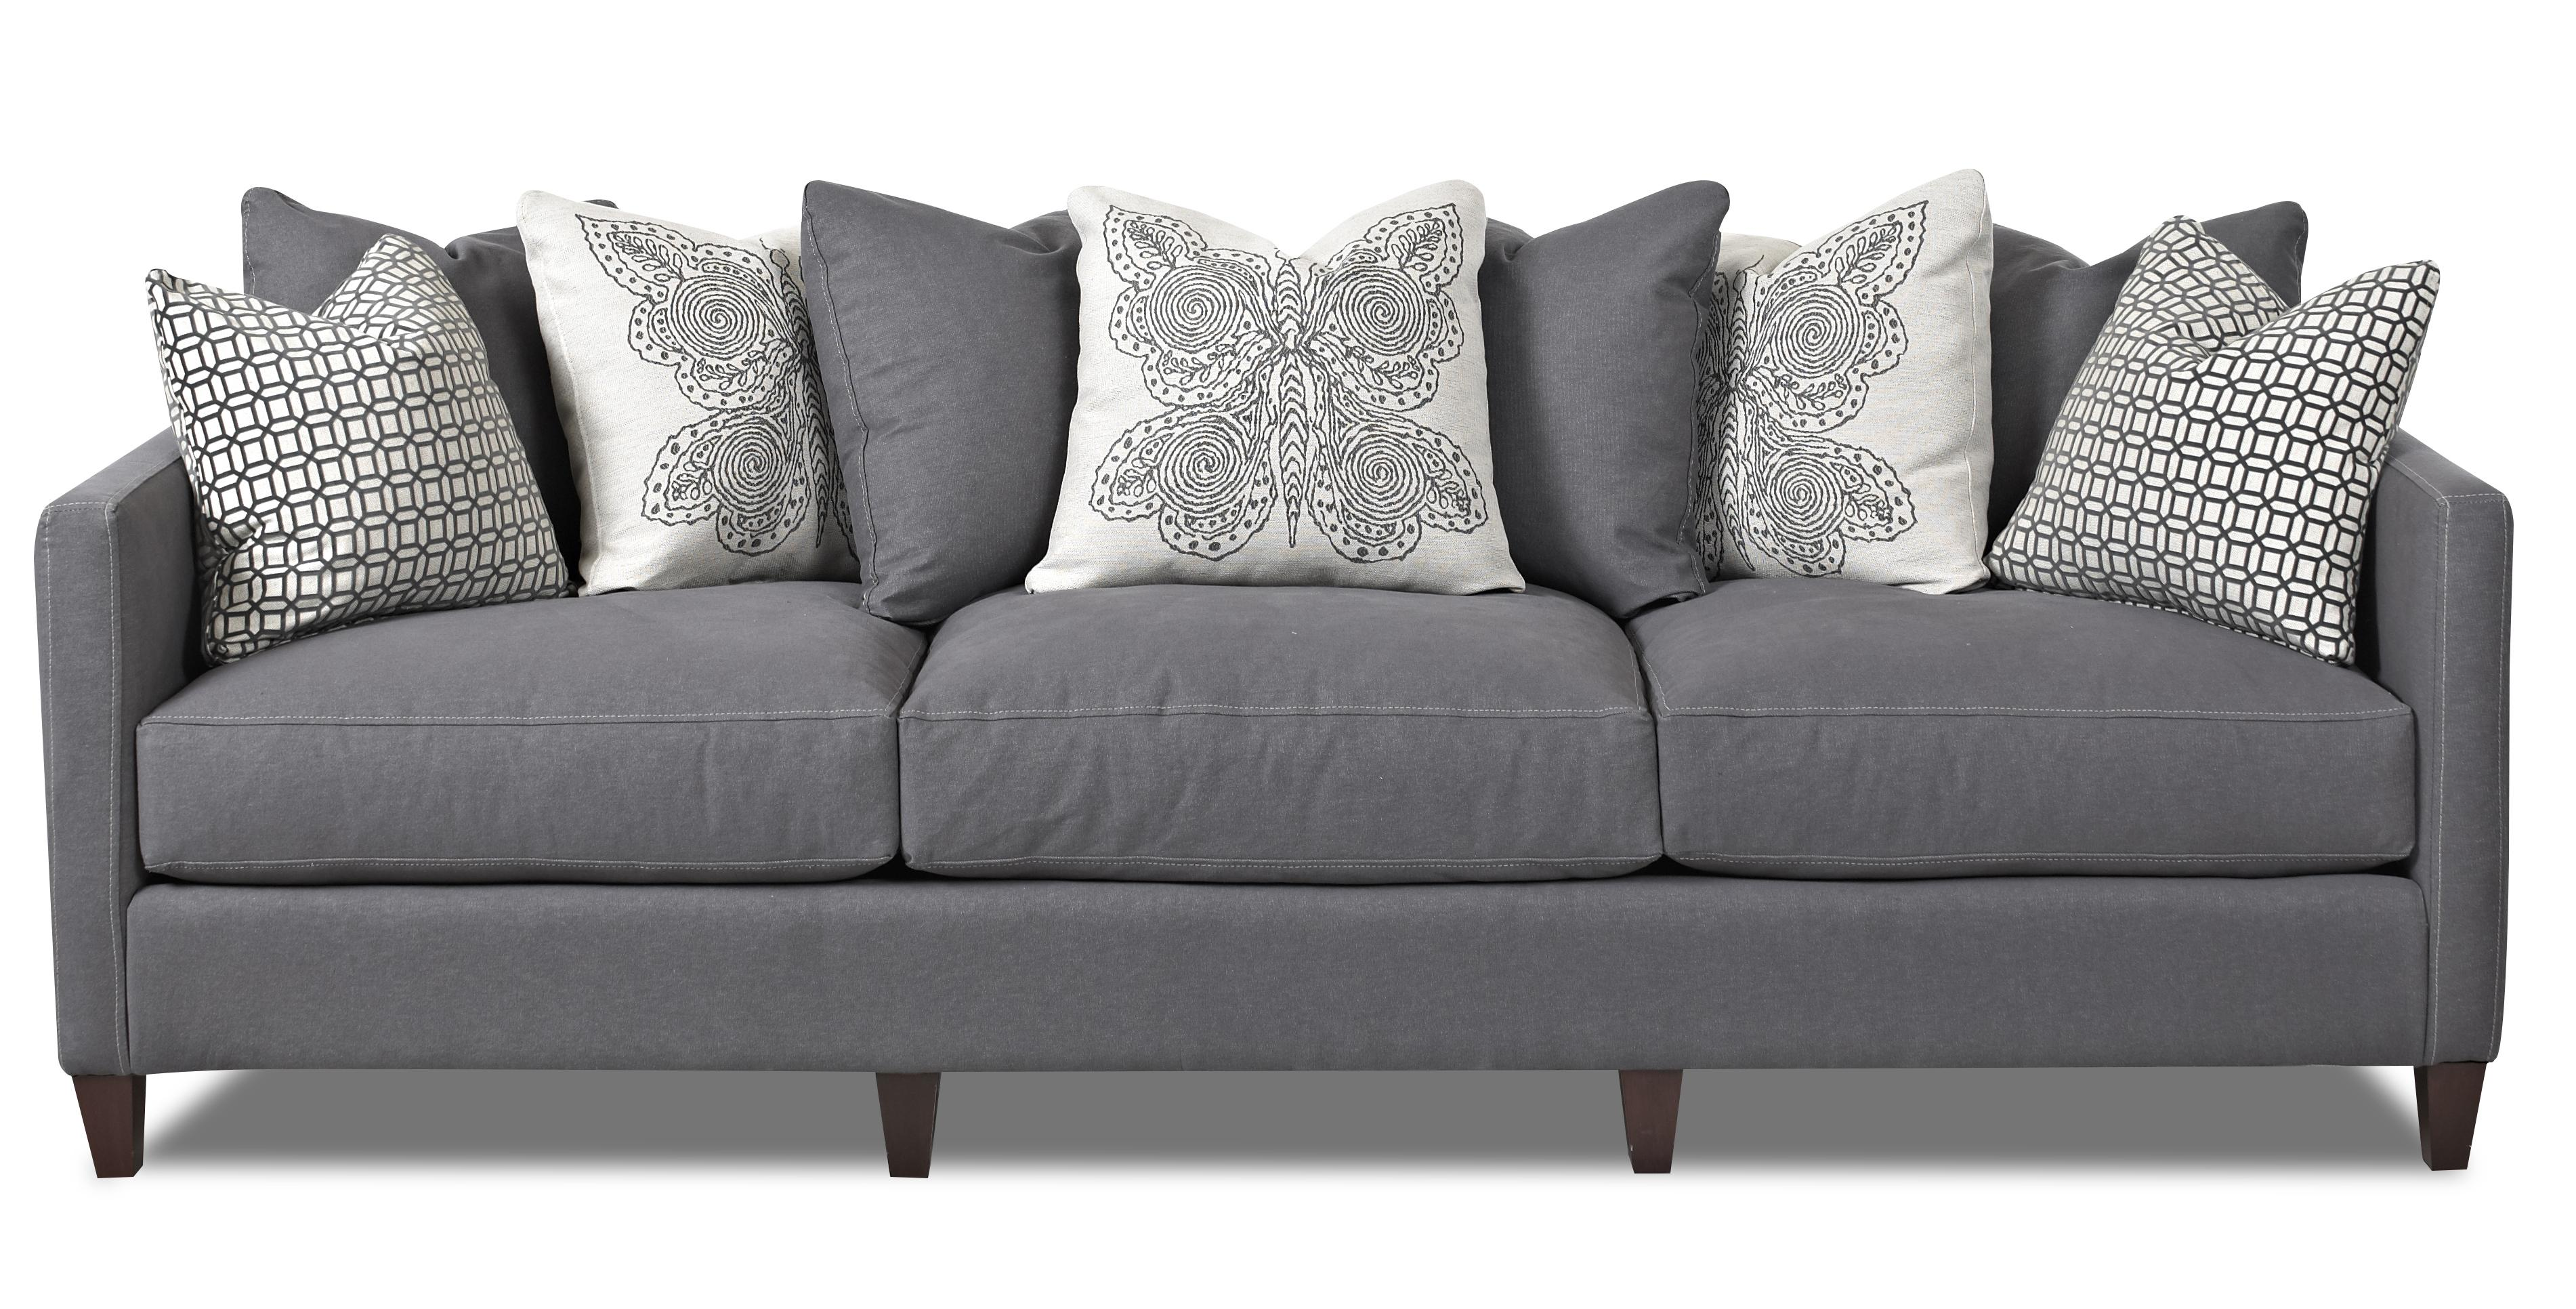 big pillows for sofas drexel heritage sofa prices large design awesome daybed ideas